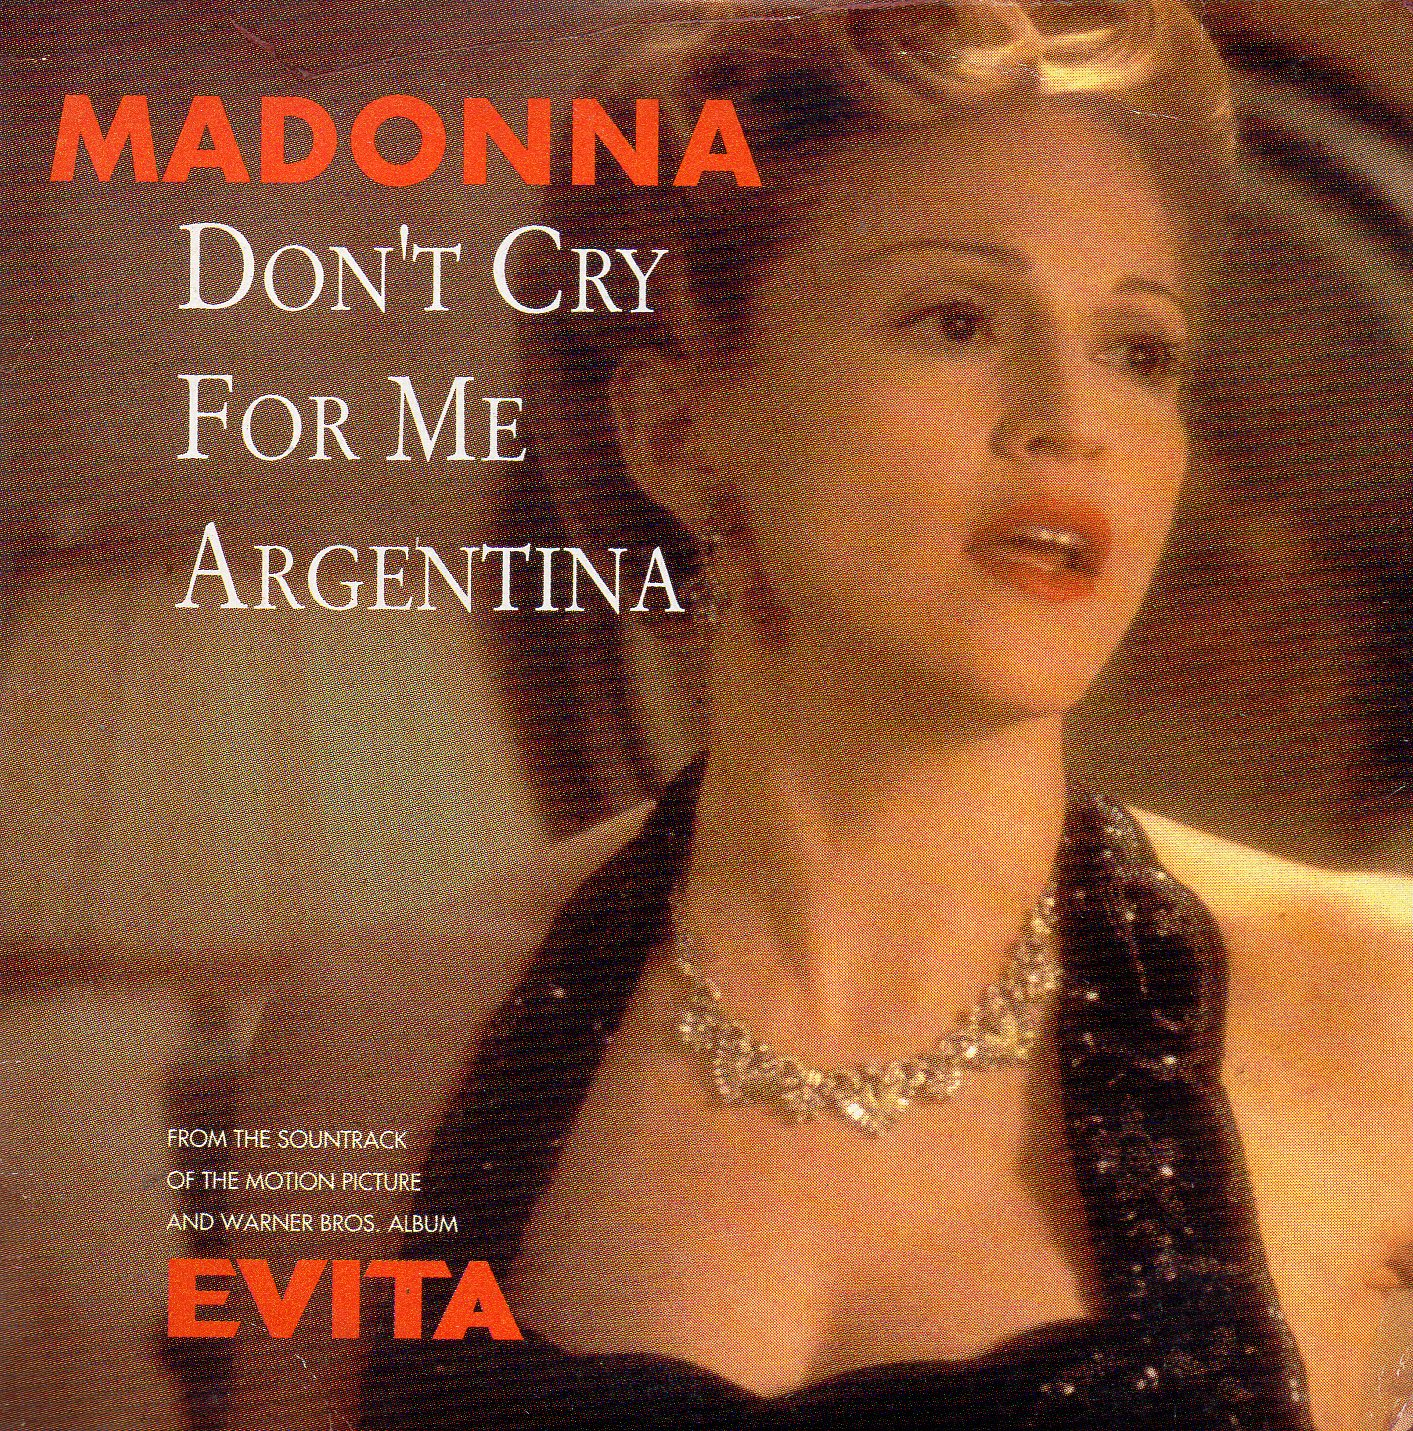 MADONNA - Don't Cry For Me Argentina - U.s. Promo Issue - Miami Mix Edit 4:29/radio Edit 4:50/miami Spanglish